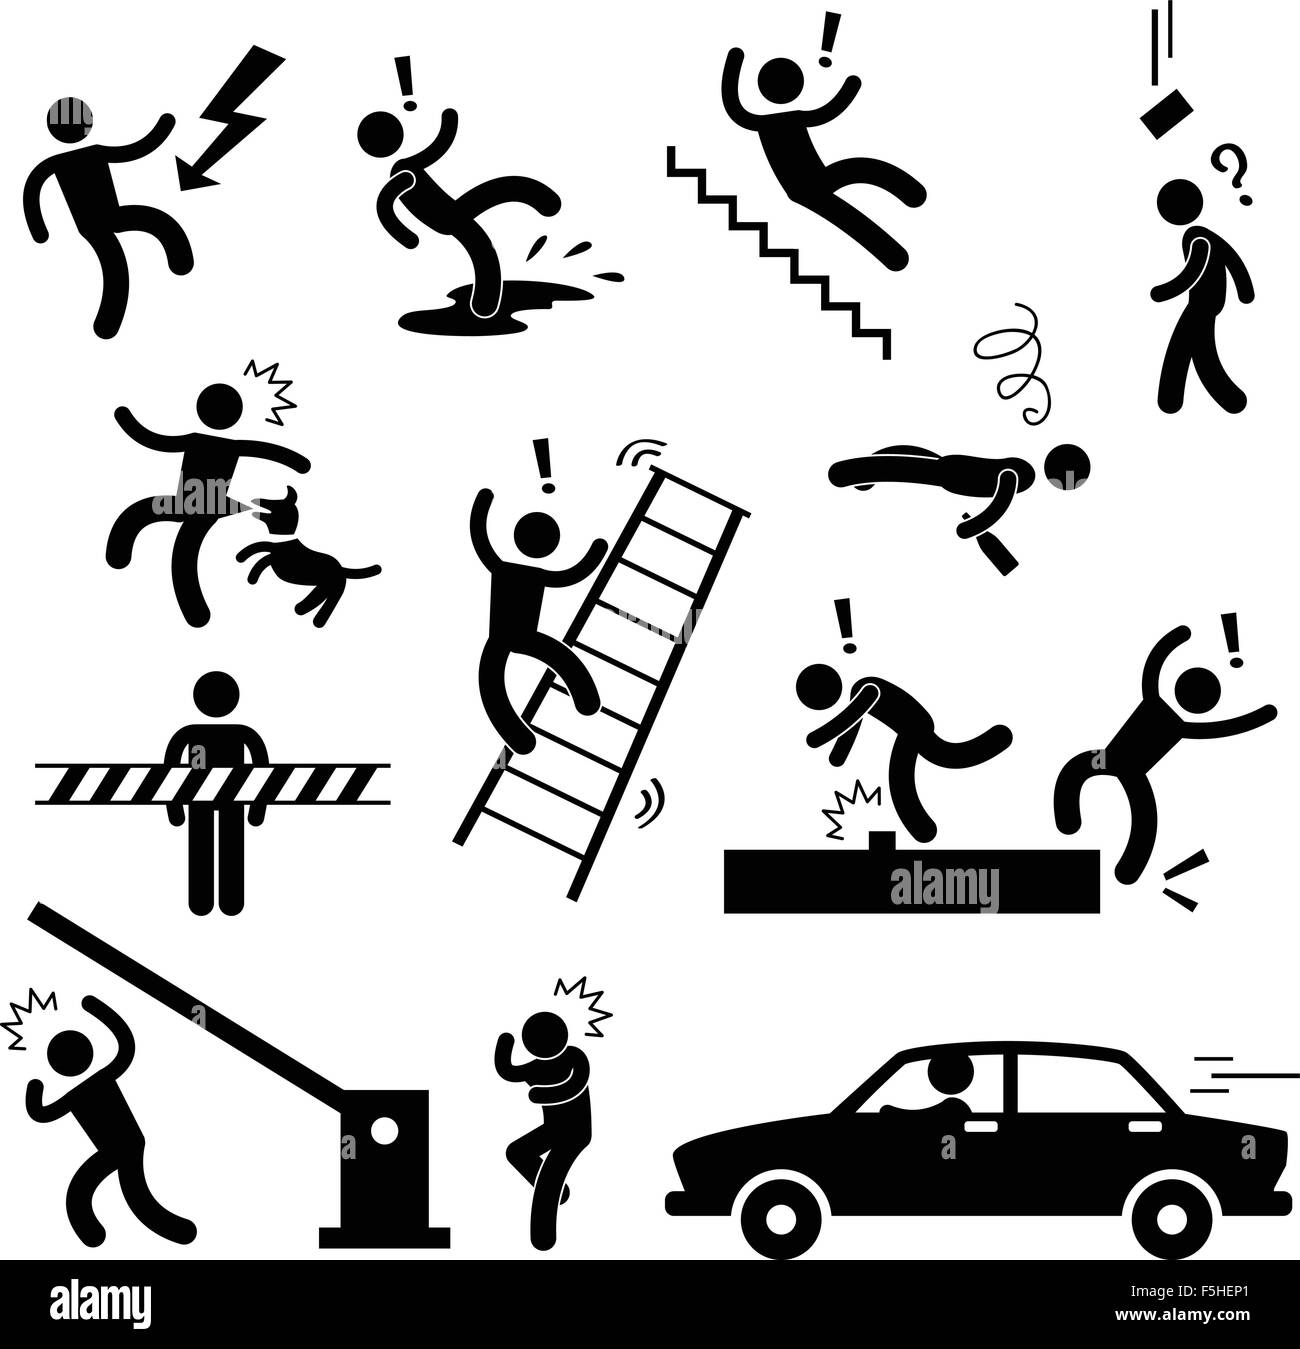 Caution Safety Danger Electricity Shock Slippery Fall Car Accident Icon Sign Symbol Pictogram - Stock Image